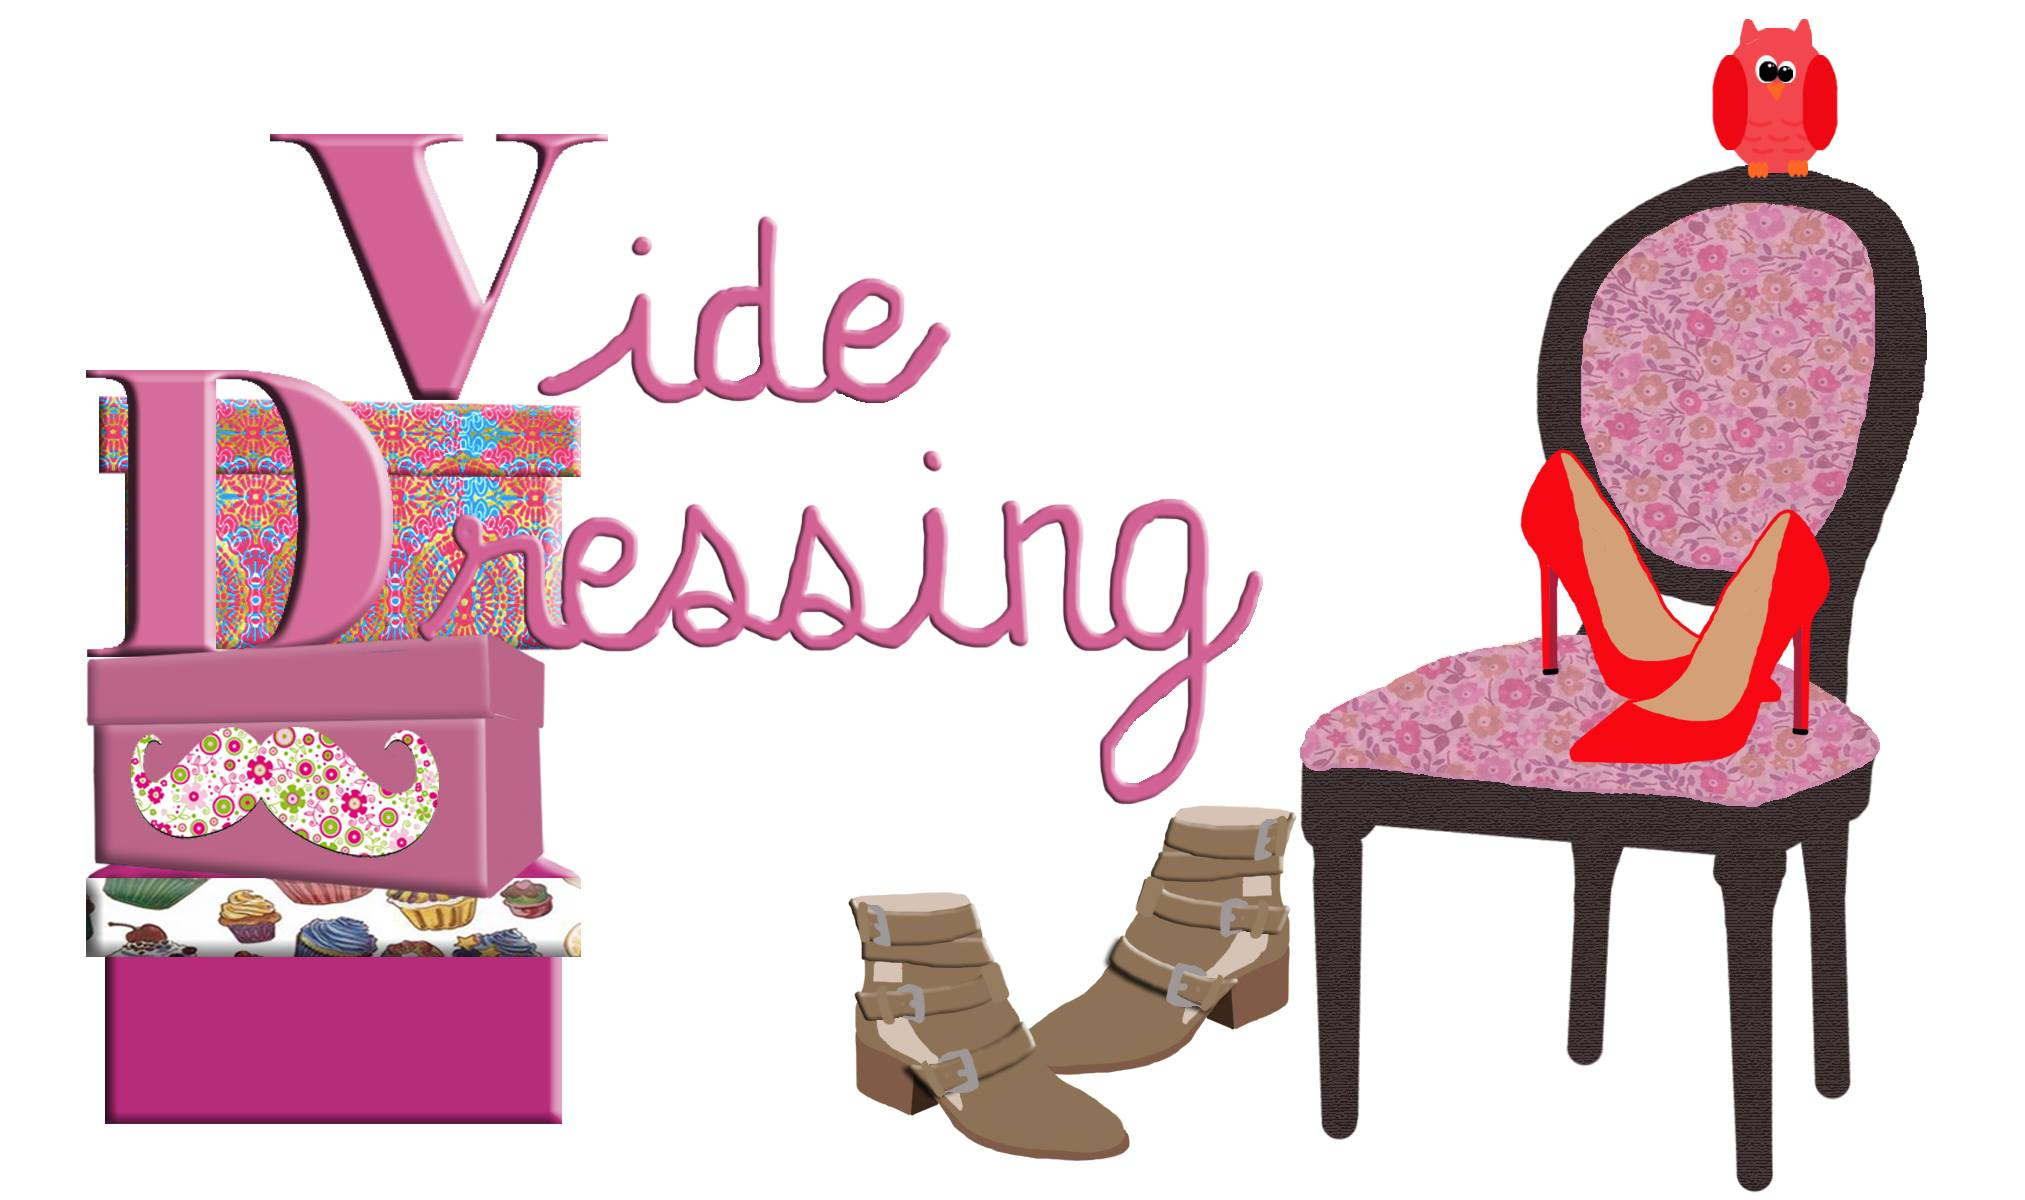 vide dressing nocturne domaine nature samedi 29 octobre la vie mulhouse. Black Bedroom Furniture Sets. Home Design Ideas